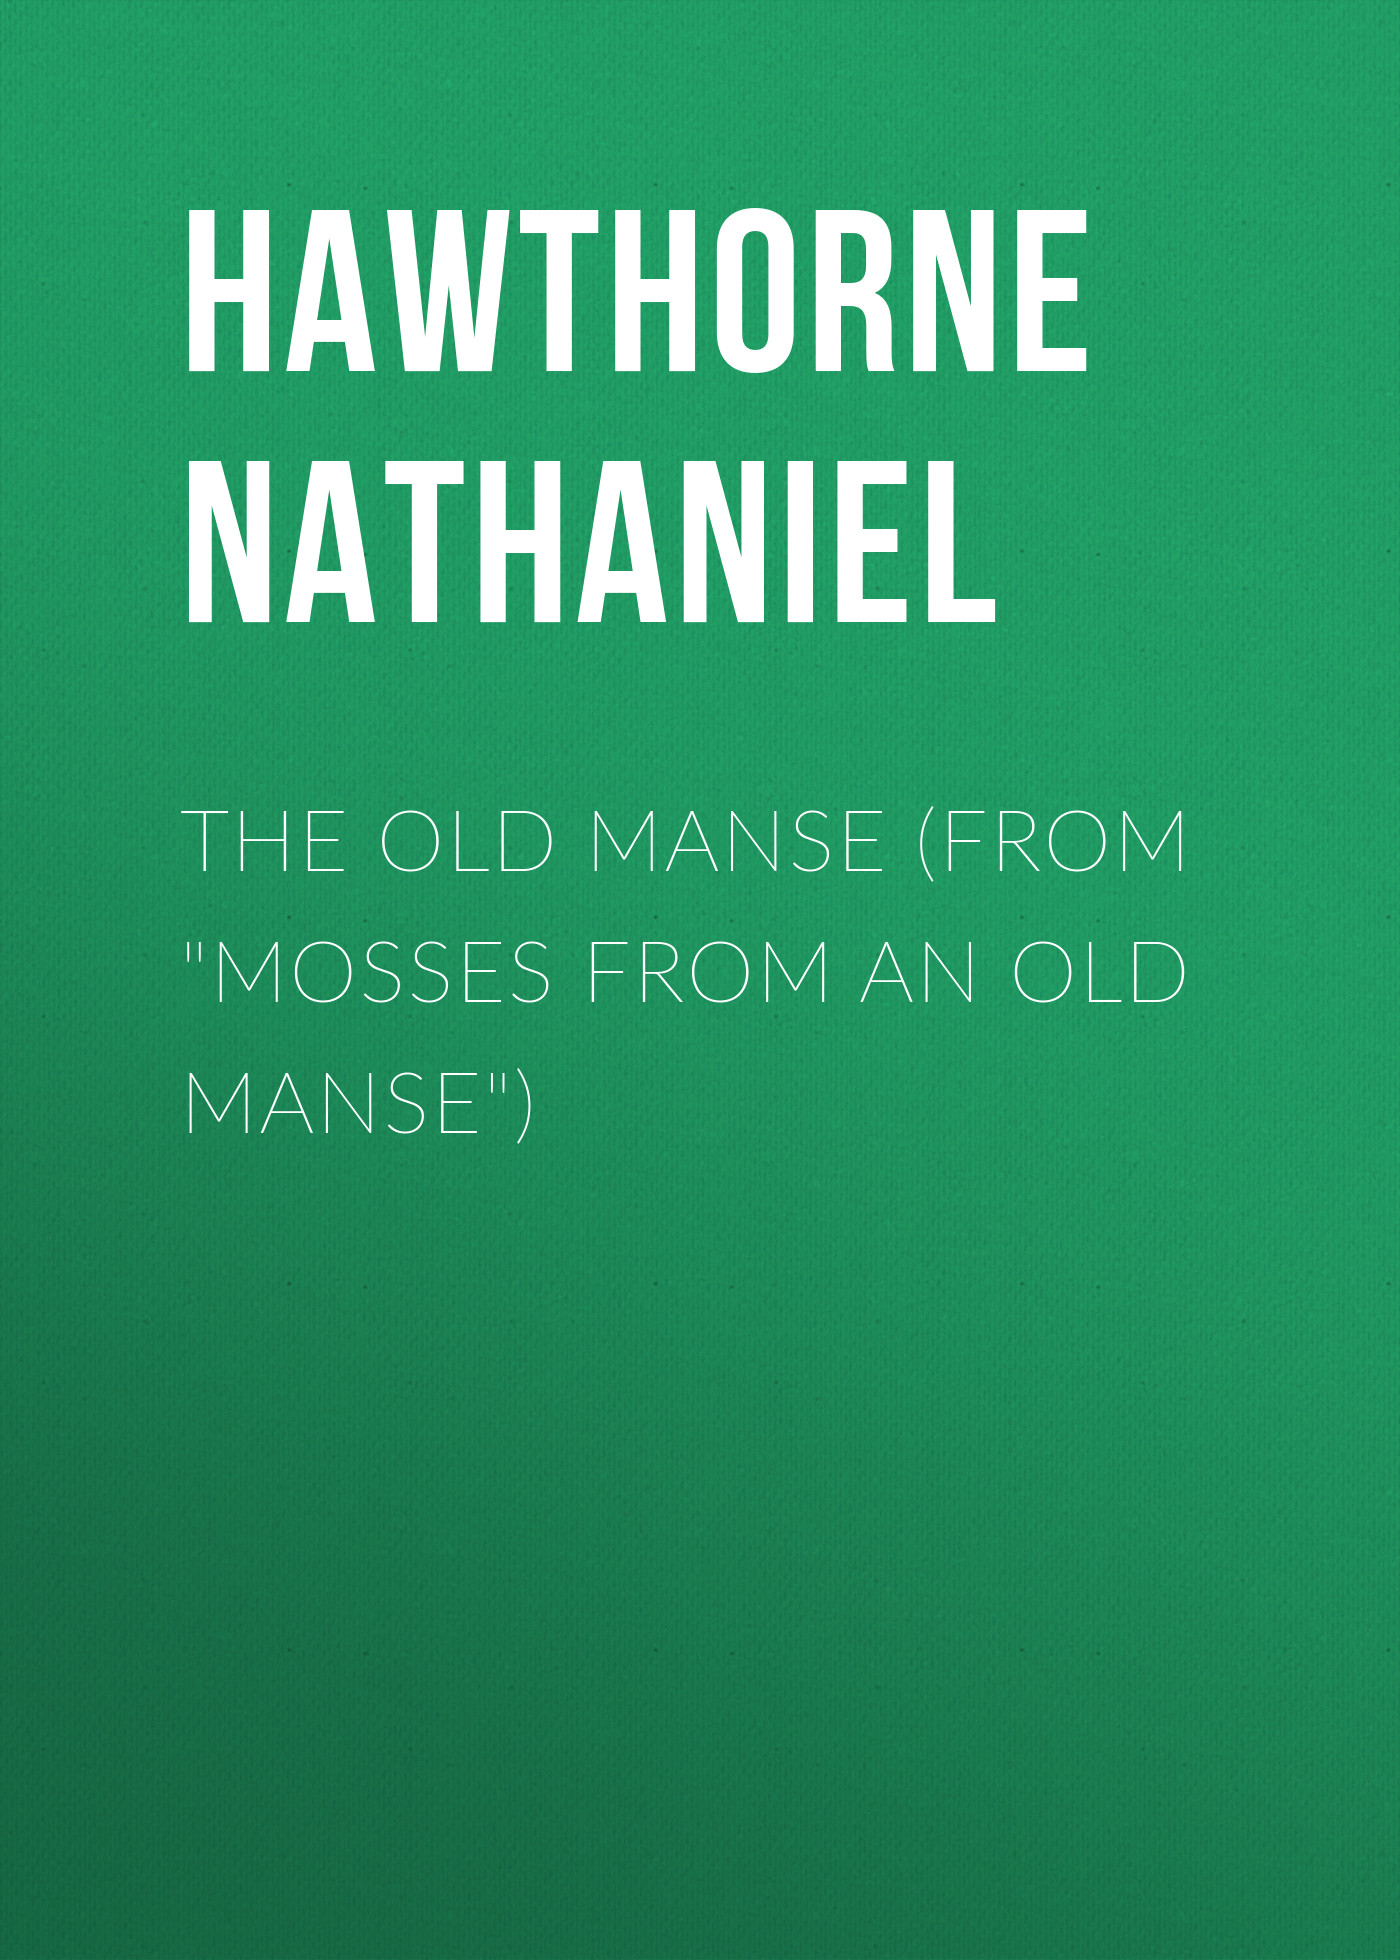 Hawthorne Nathaniel The Old Manse (From Mosses from an Old Manse) hawthorne n mosses from an old manse the blithedale romance